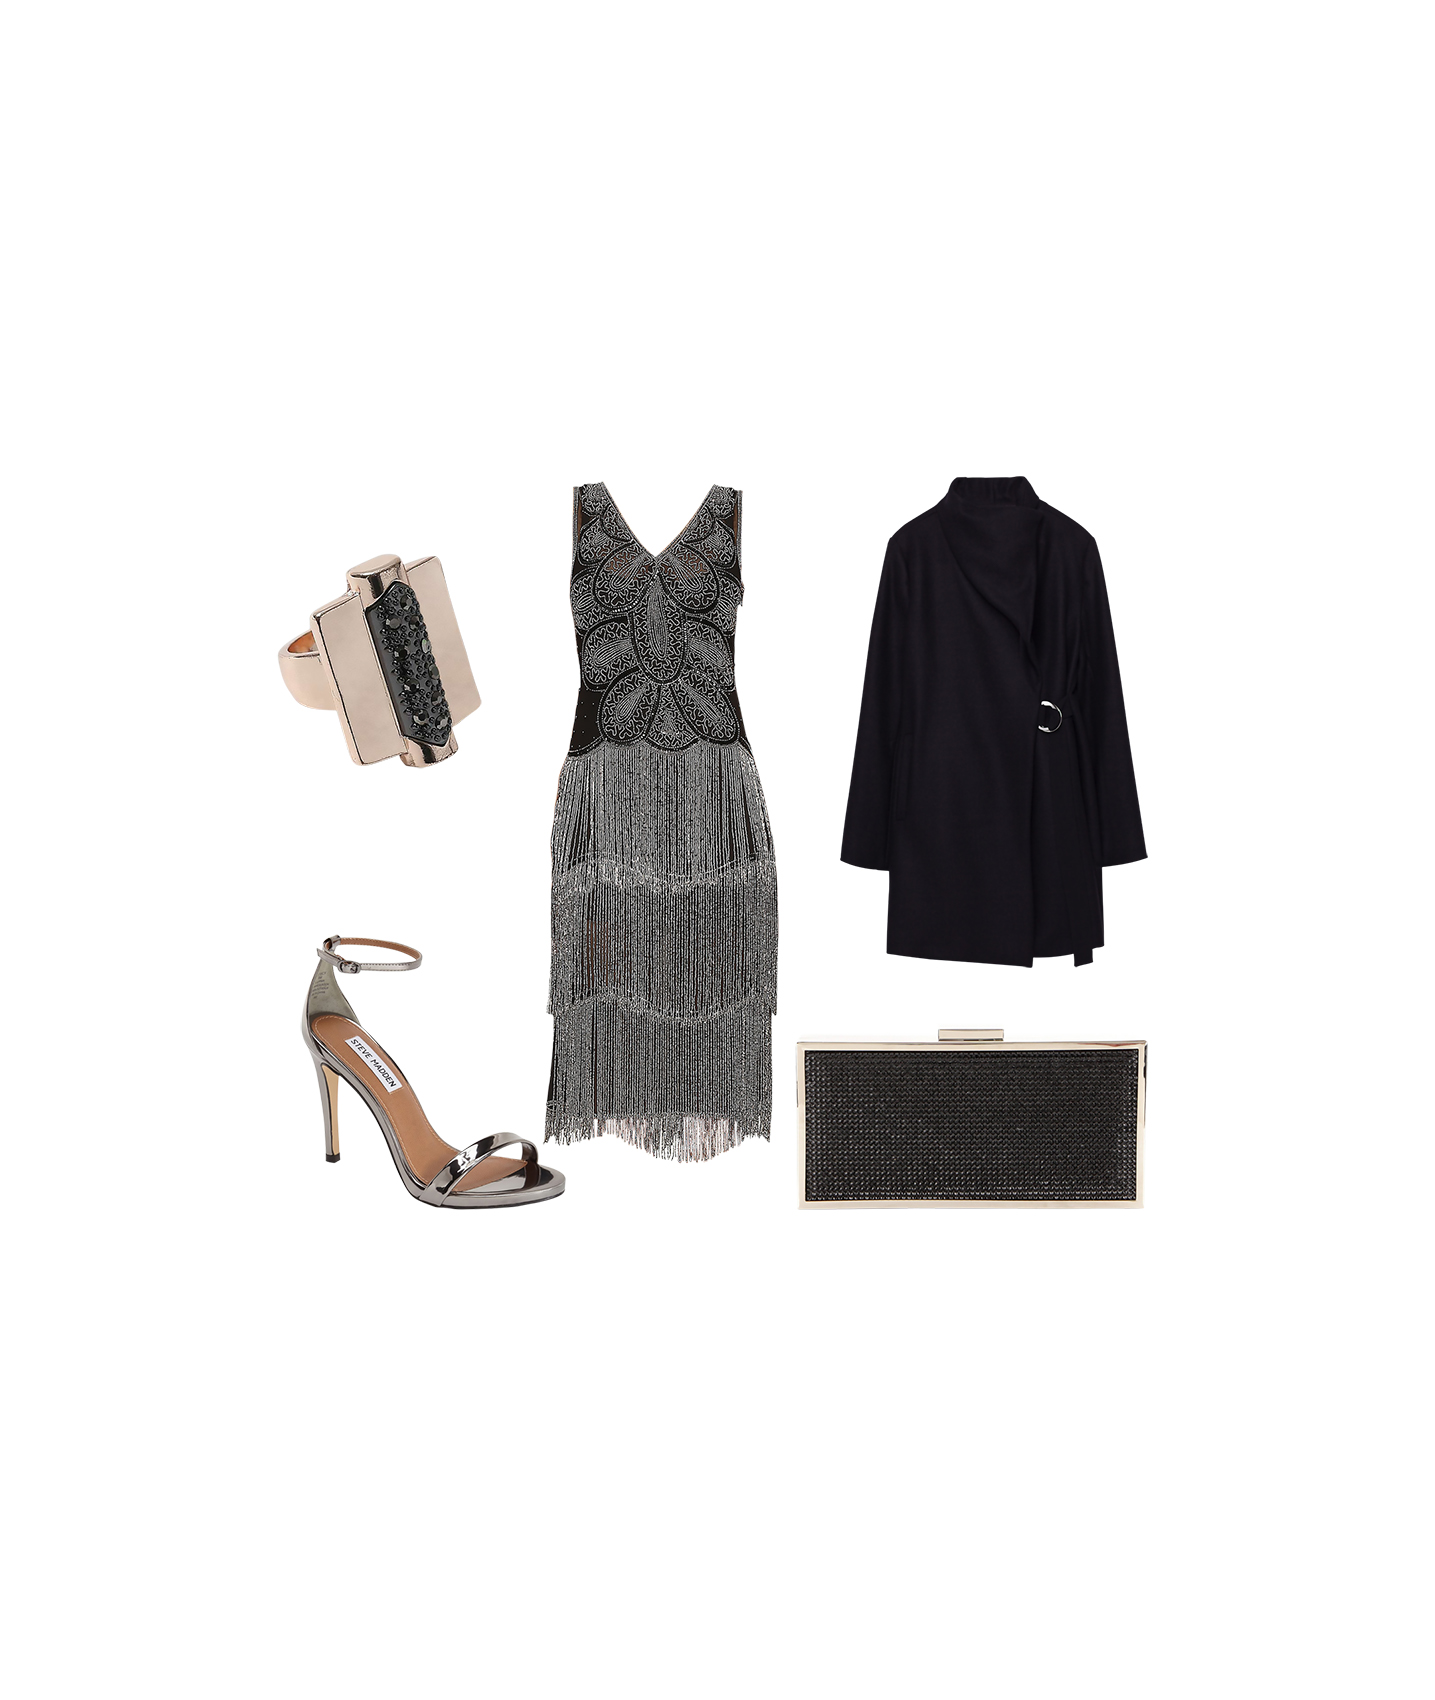 New Year's Eve Outfits - The Dress